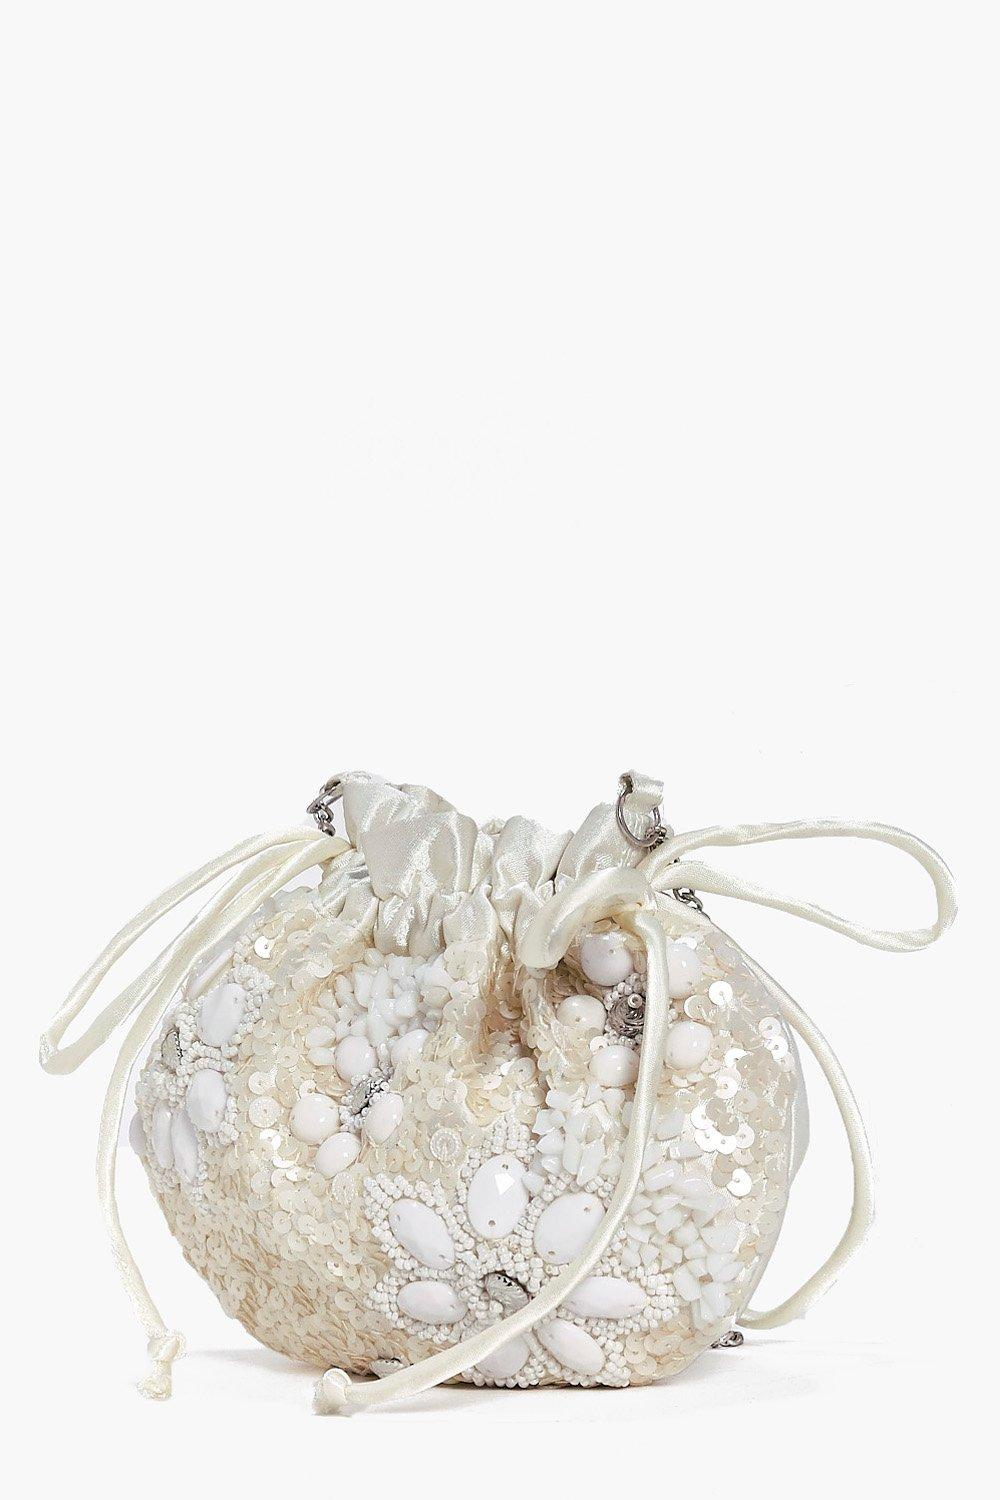 Bridal Floral Pouch Cross Body Bag - cream - Macey